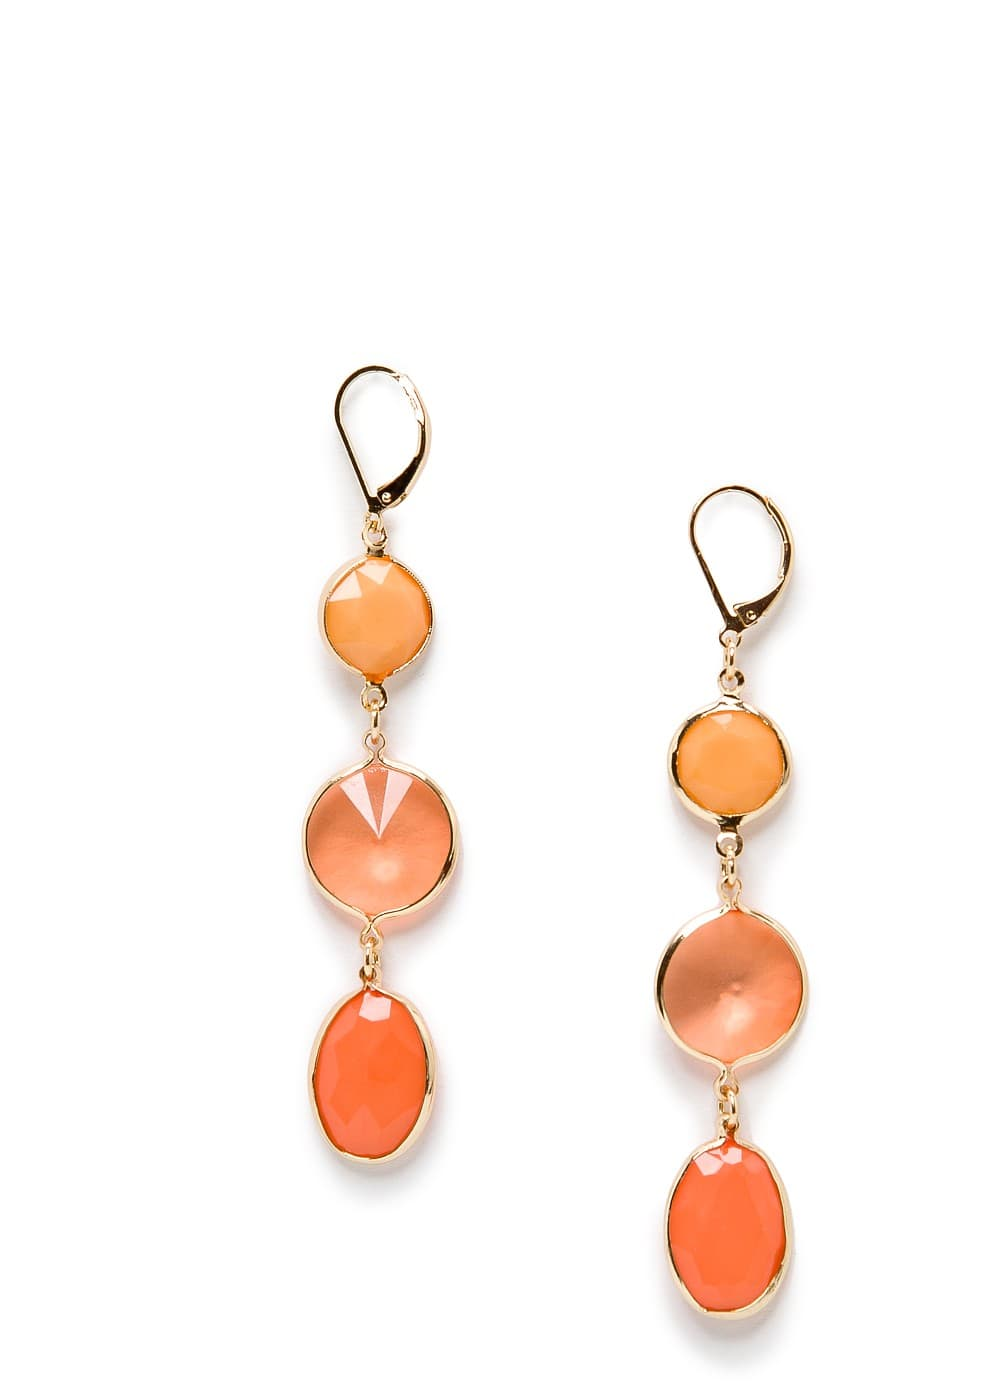 Crystals drop earrings